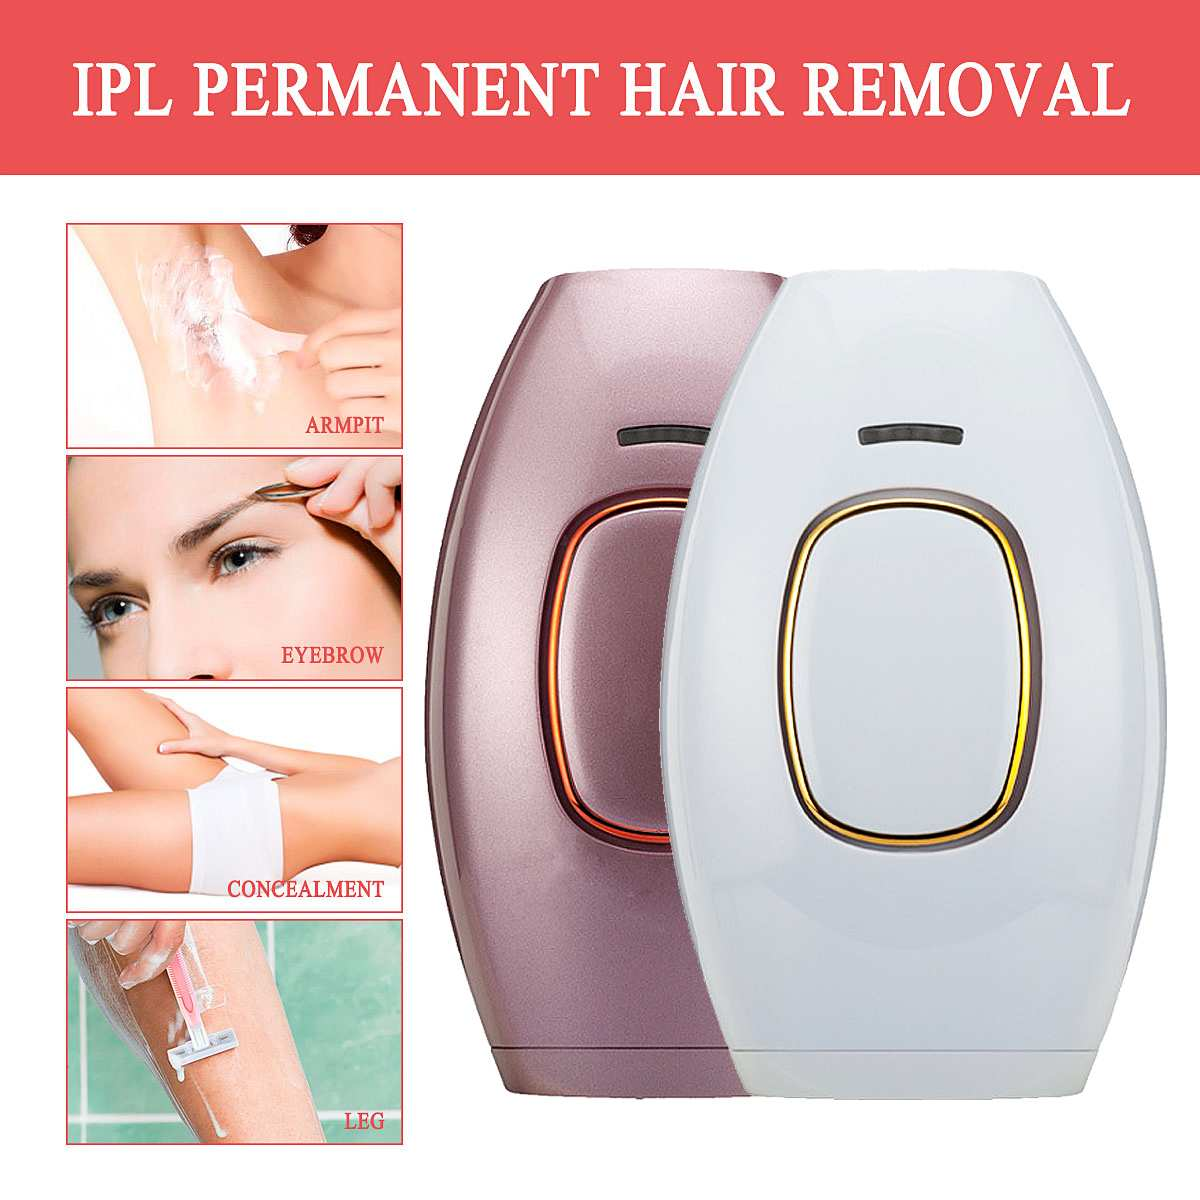 500000 Pulses IPL Laser Epilator Portable Depilation Machine Full Body Hair Removal Device Painless Personal Care Appliance New500000 Pulses IPL Laser Epilator Portable Depilation Machine Full Body Hair Removal Device Painless Personal Care Appliance New